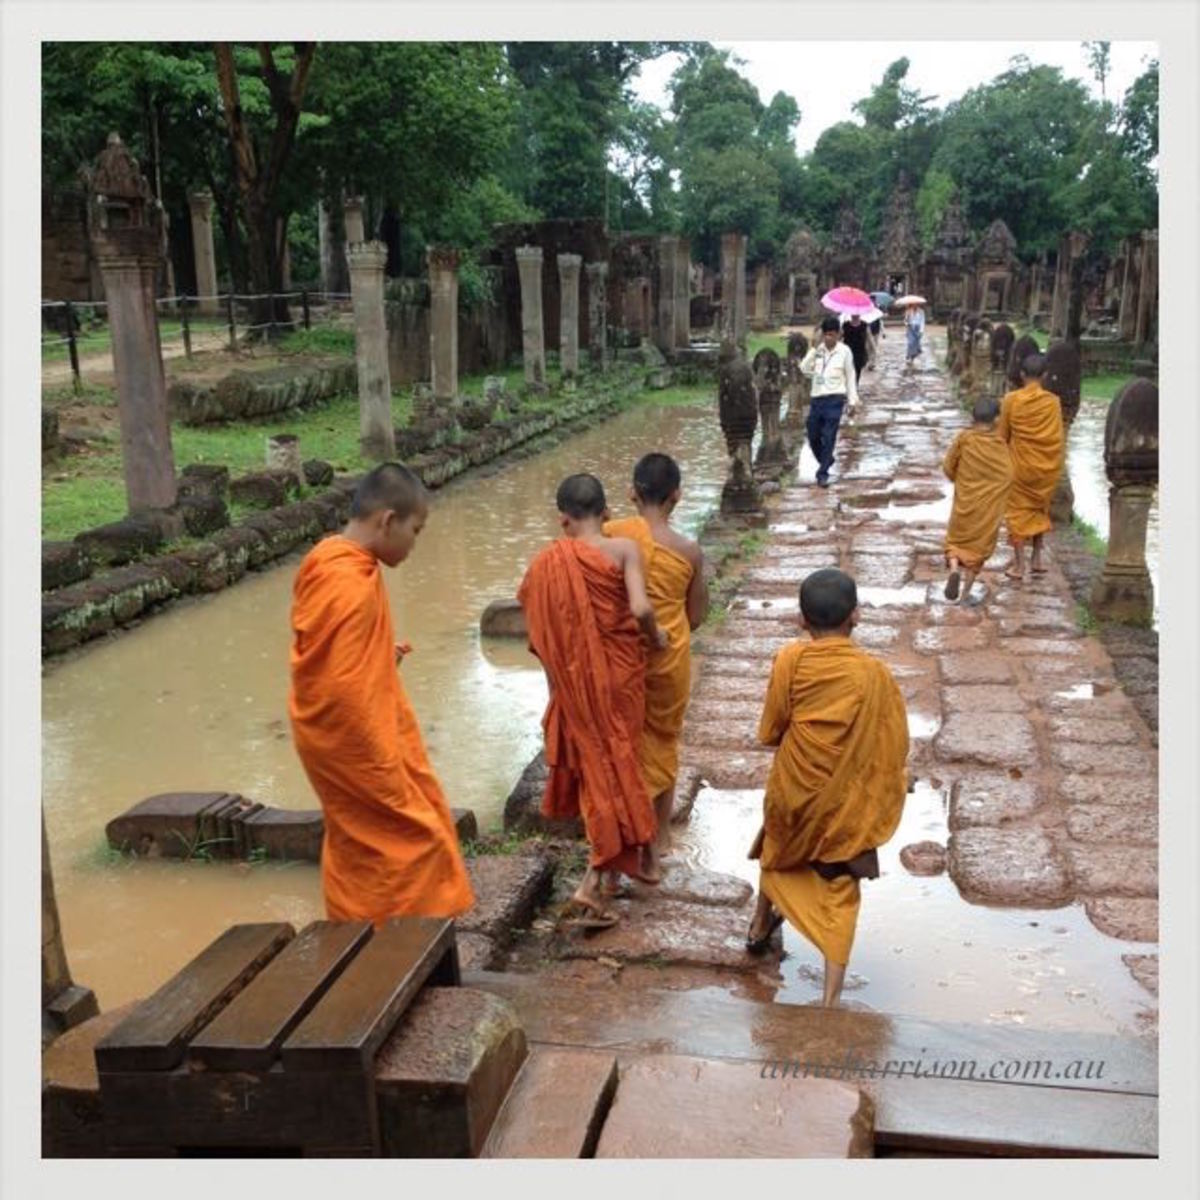 The monks of Banteay Srei